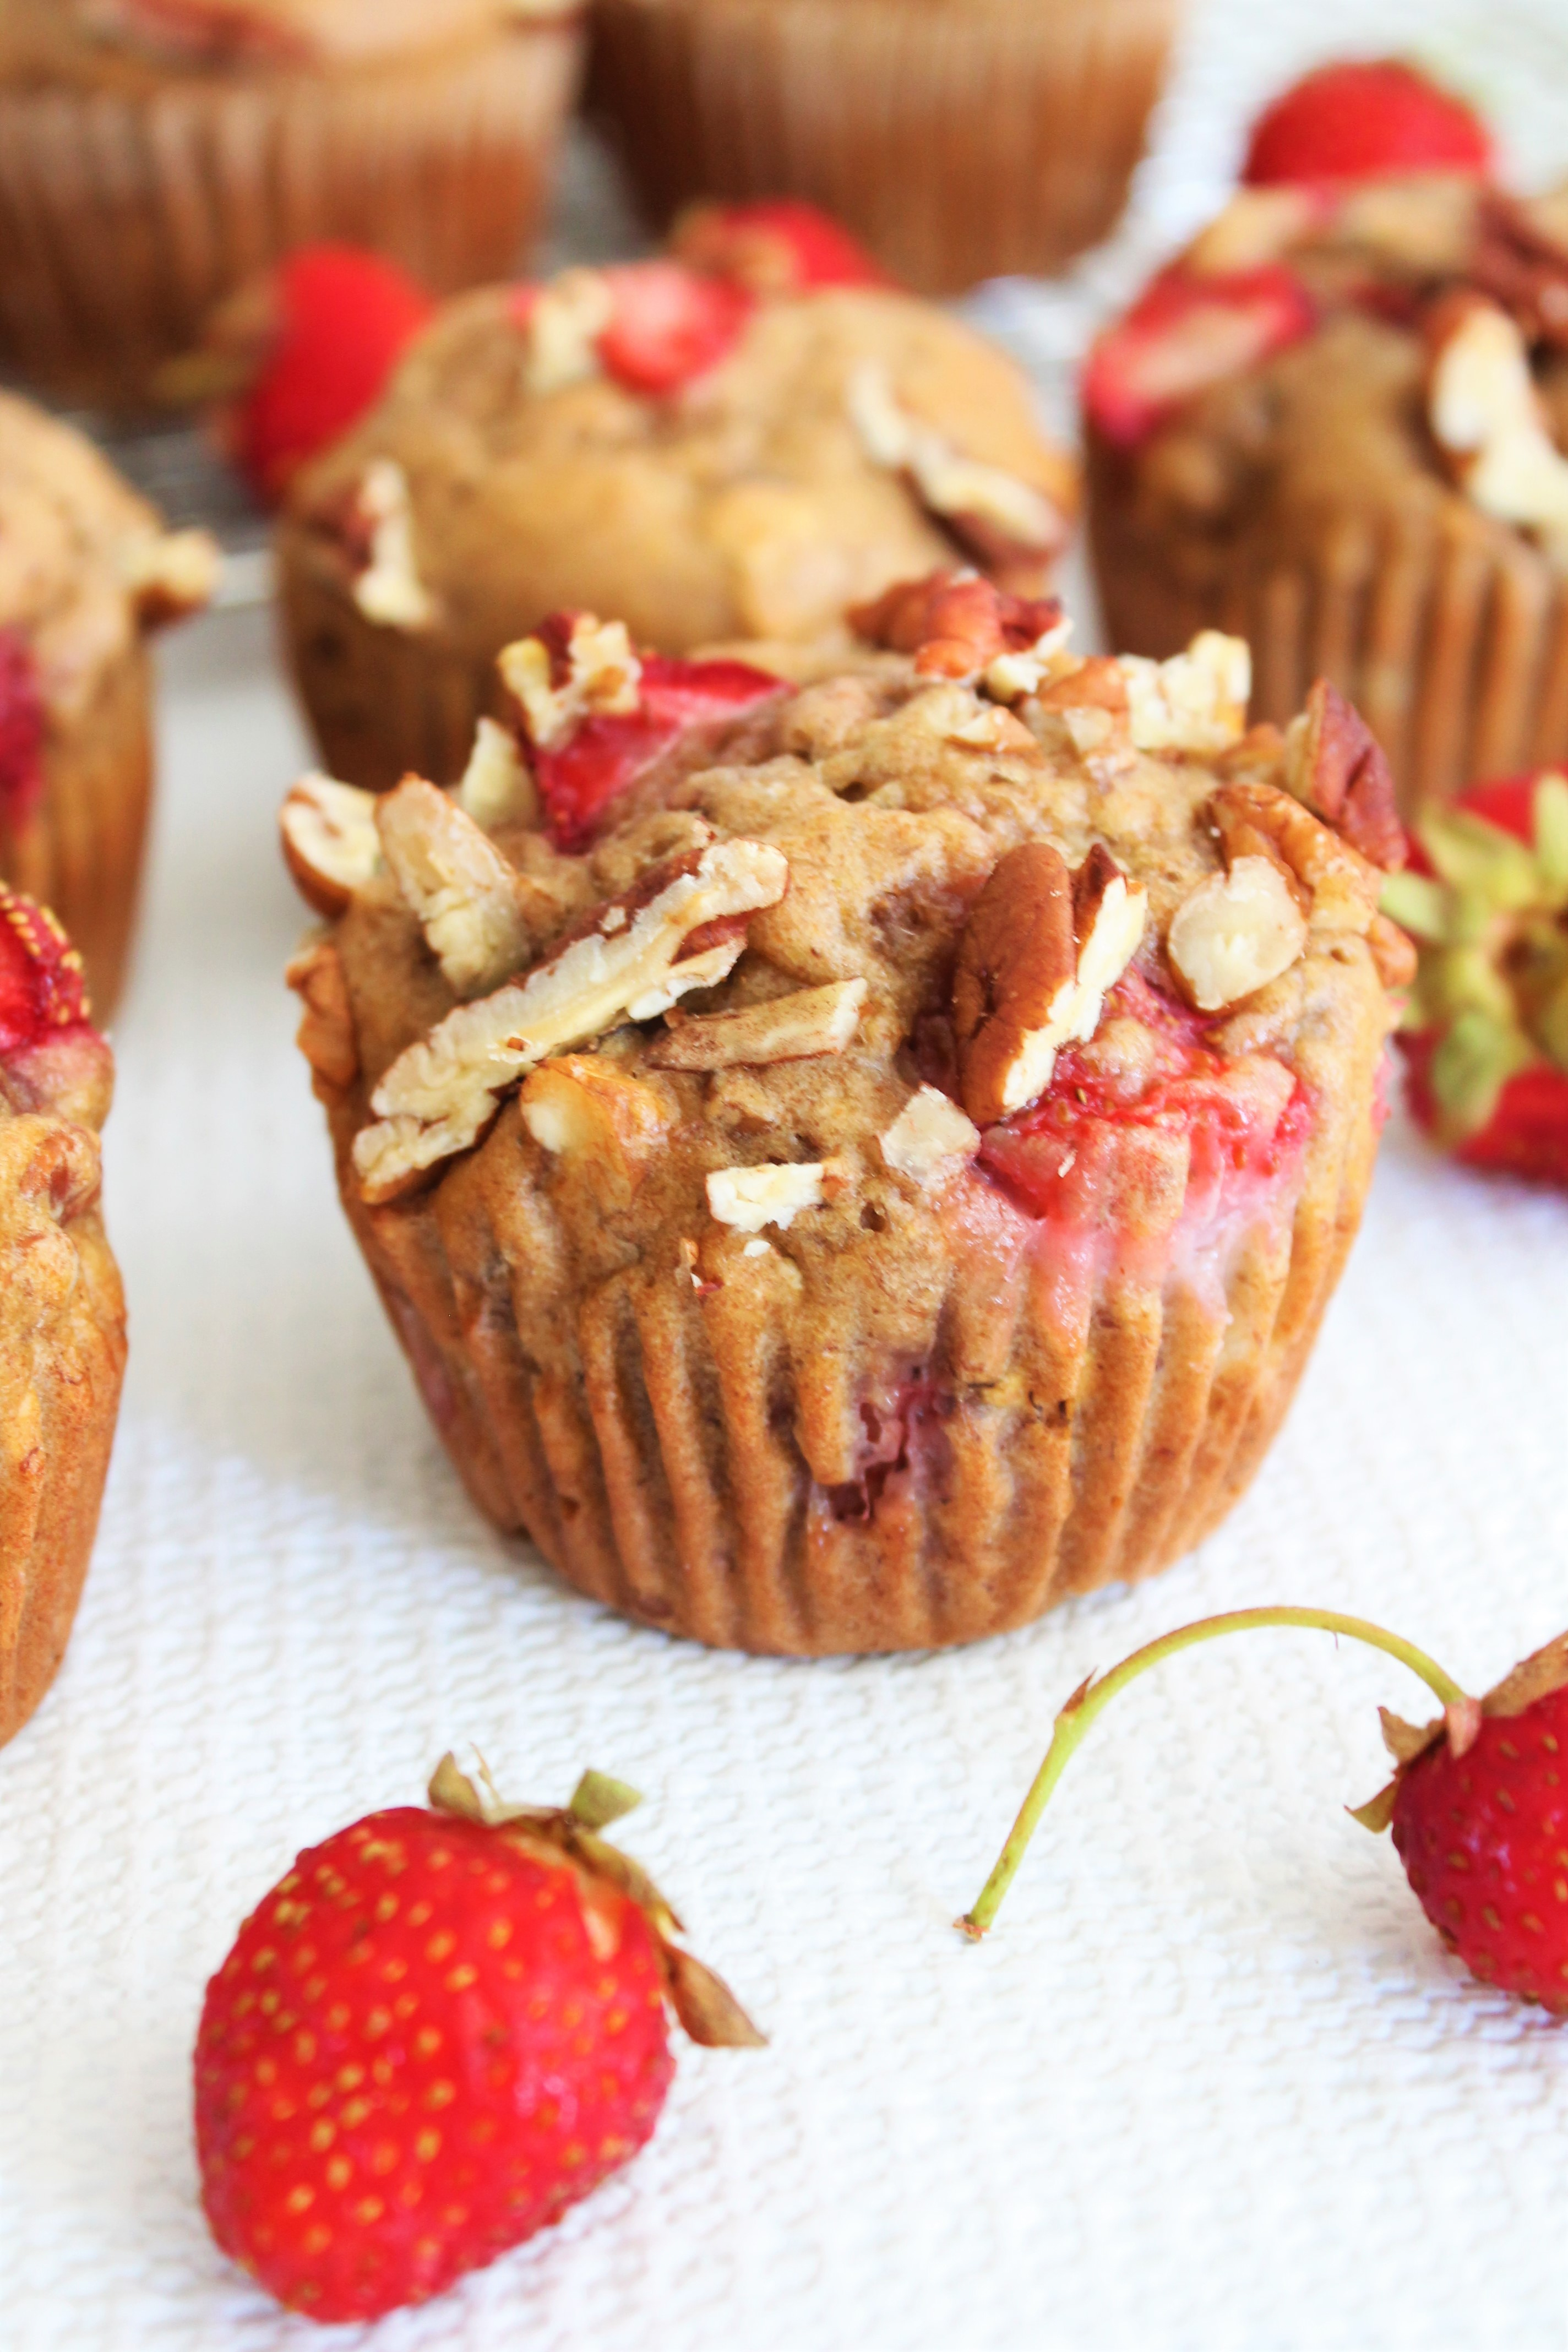 Healthy Whole Grain Strawberry Pecan Banana Muffins